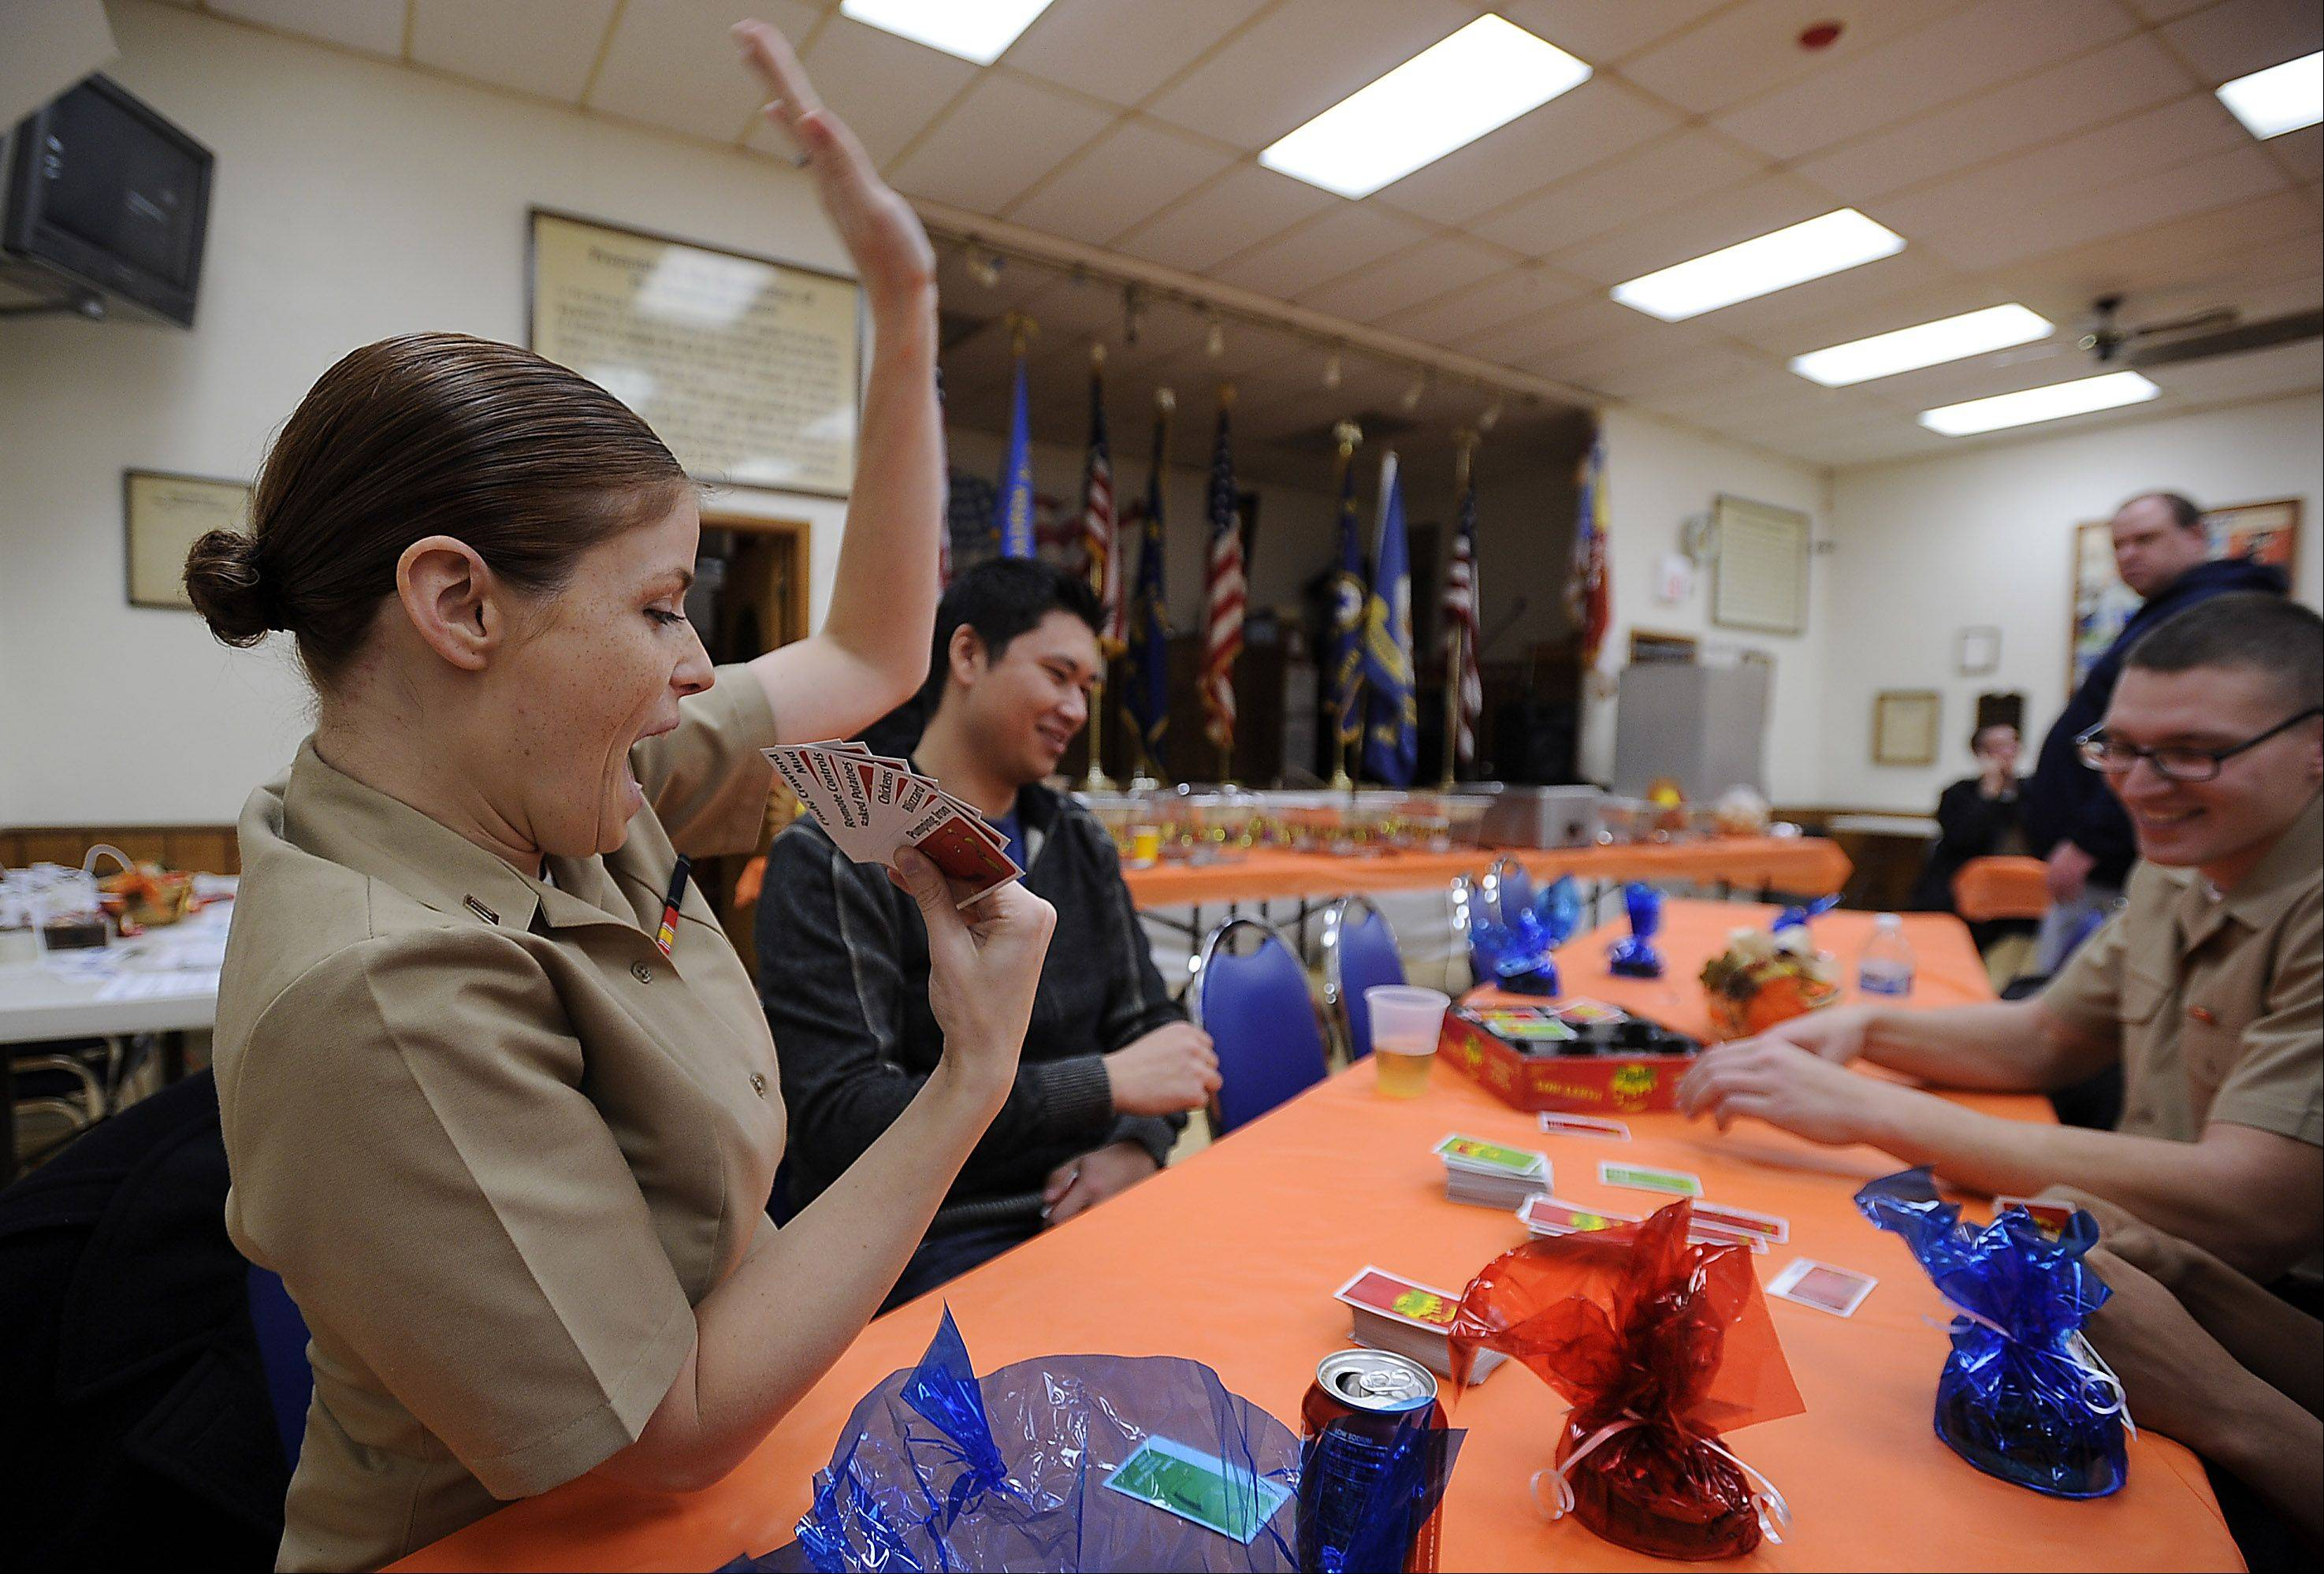 Kayla Turrubiate of Texas plays cards before Thanksgiving dinner at the American Legion Post 690 in Palatine Thursday.